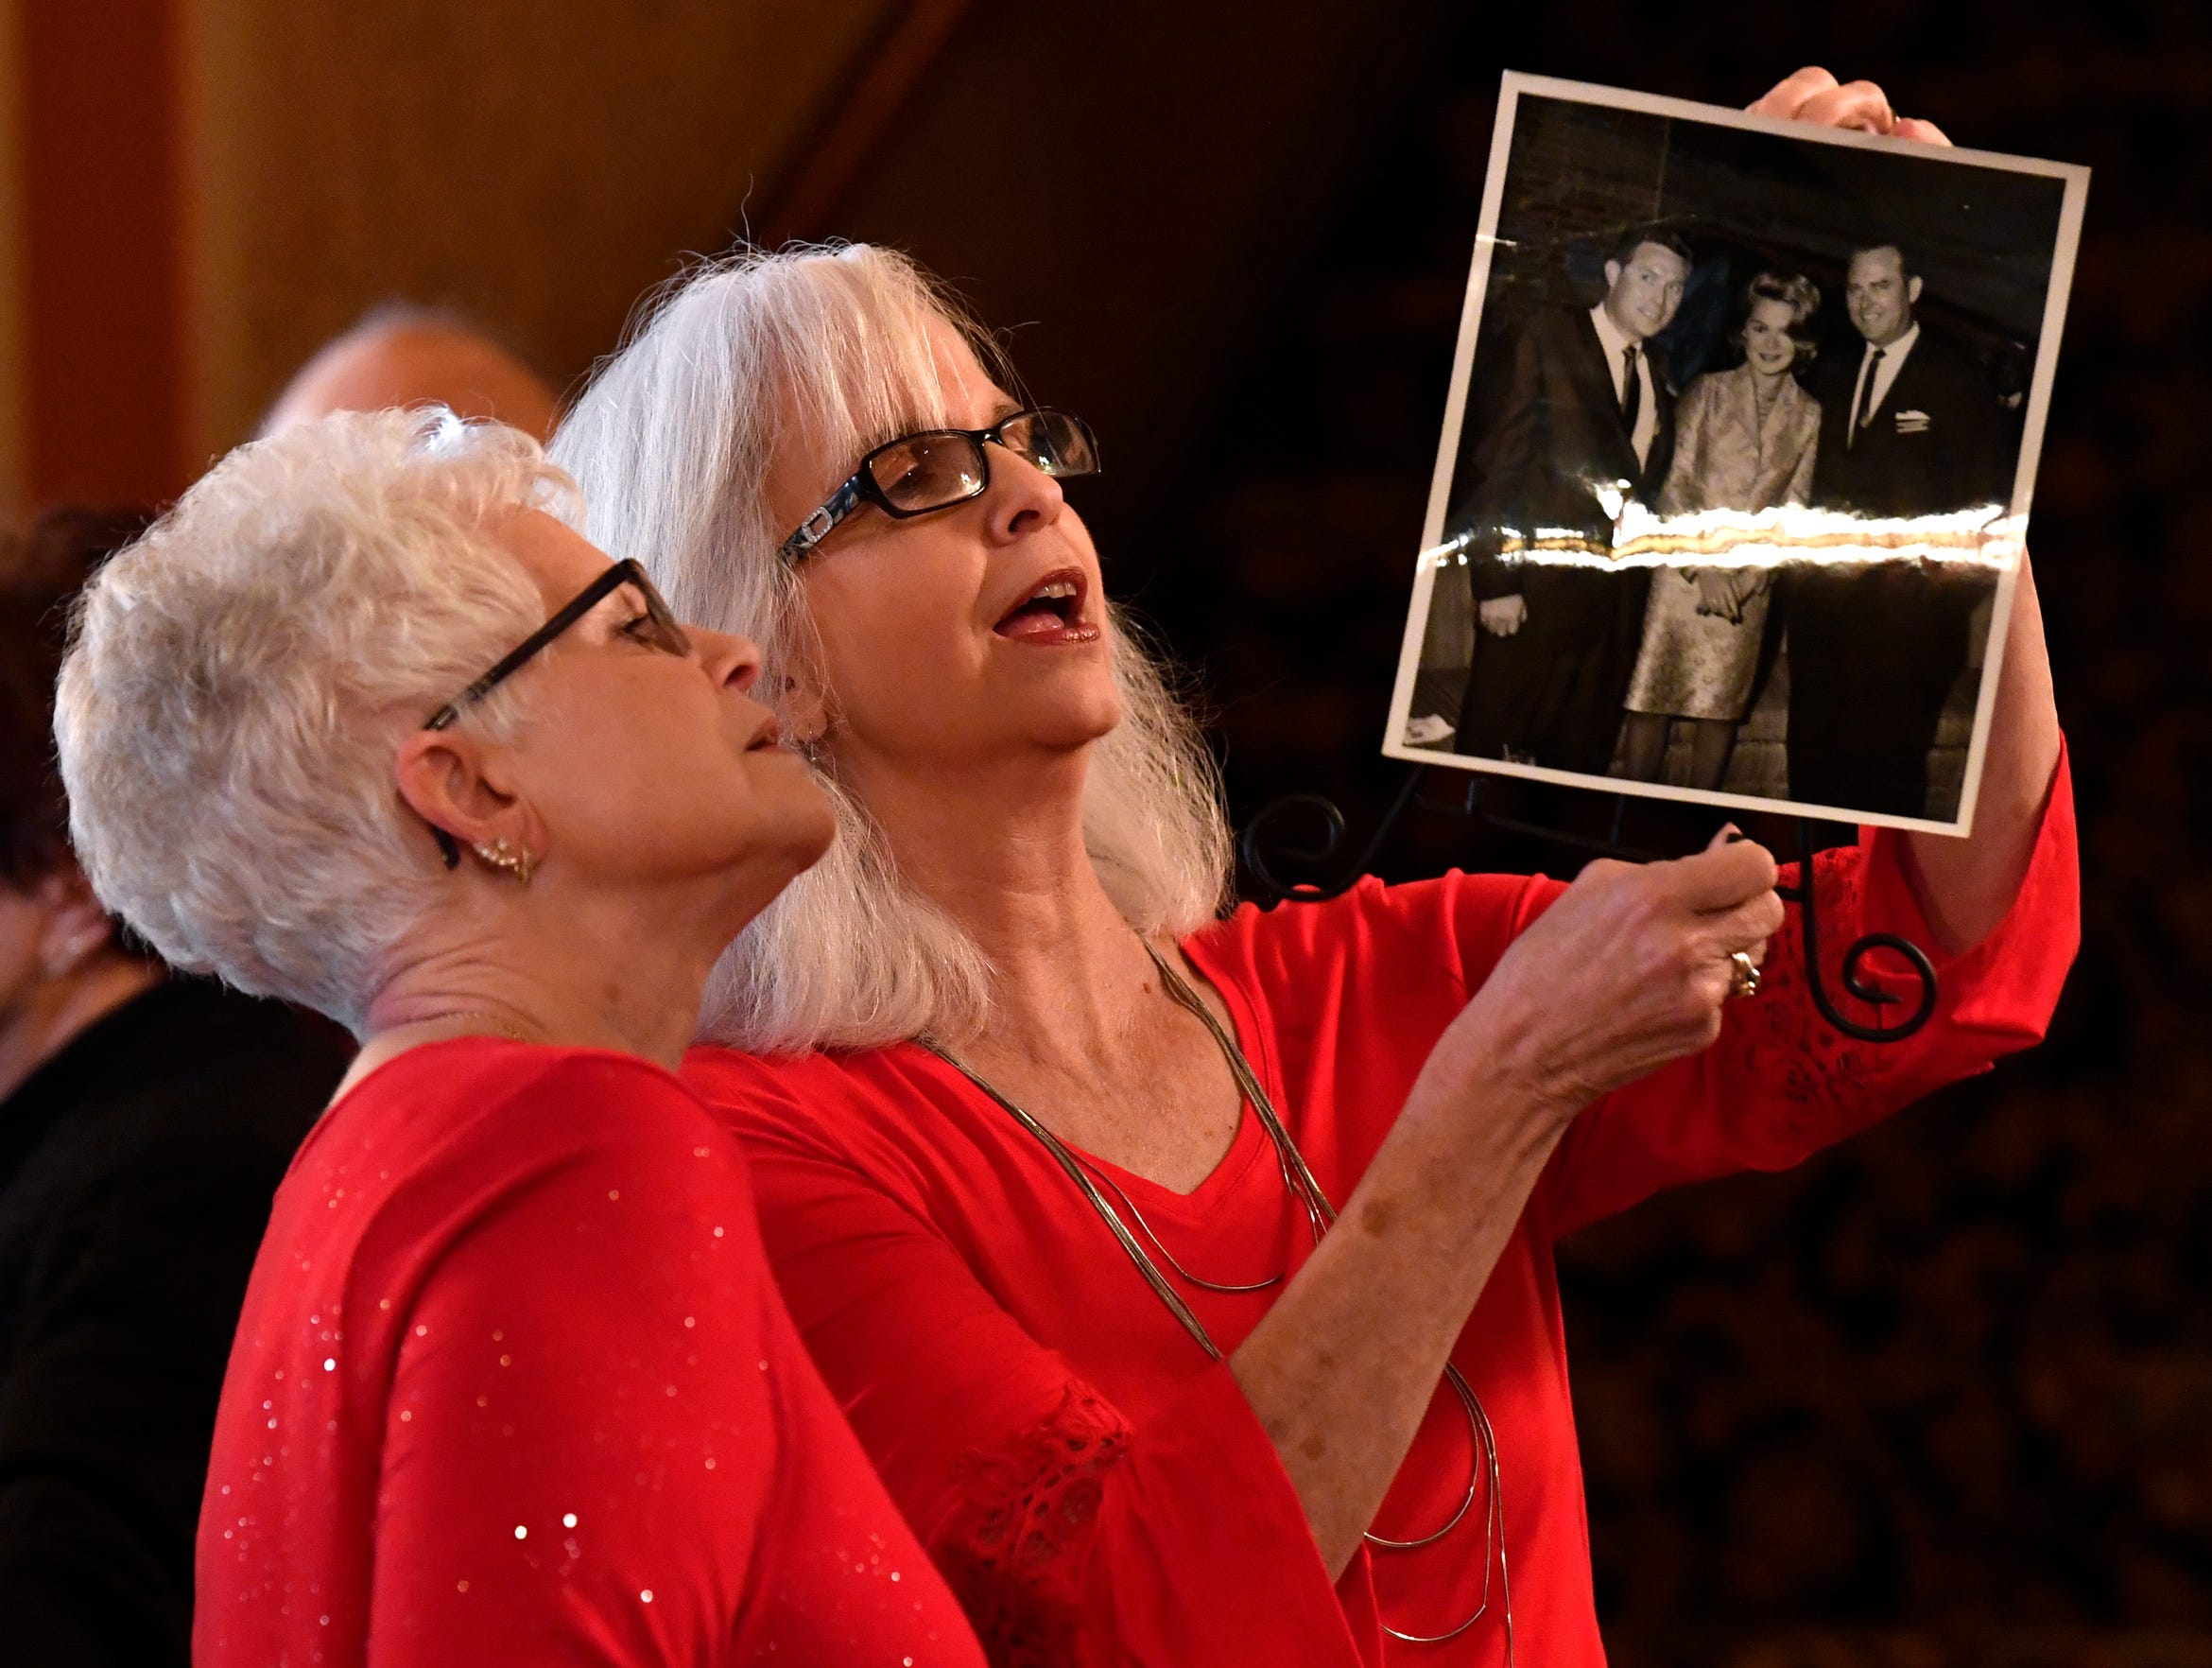 Sisters Regina Windland (left) and Benje Campbell study the back of a photograph showing Frank Sheffield with movie stars Sandra Dee and James Stewart, during a party for Sheffield at the Paramount Theatre Jan. 31.